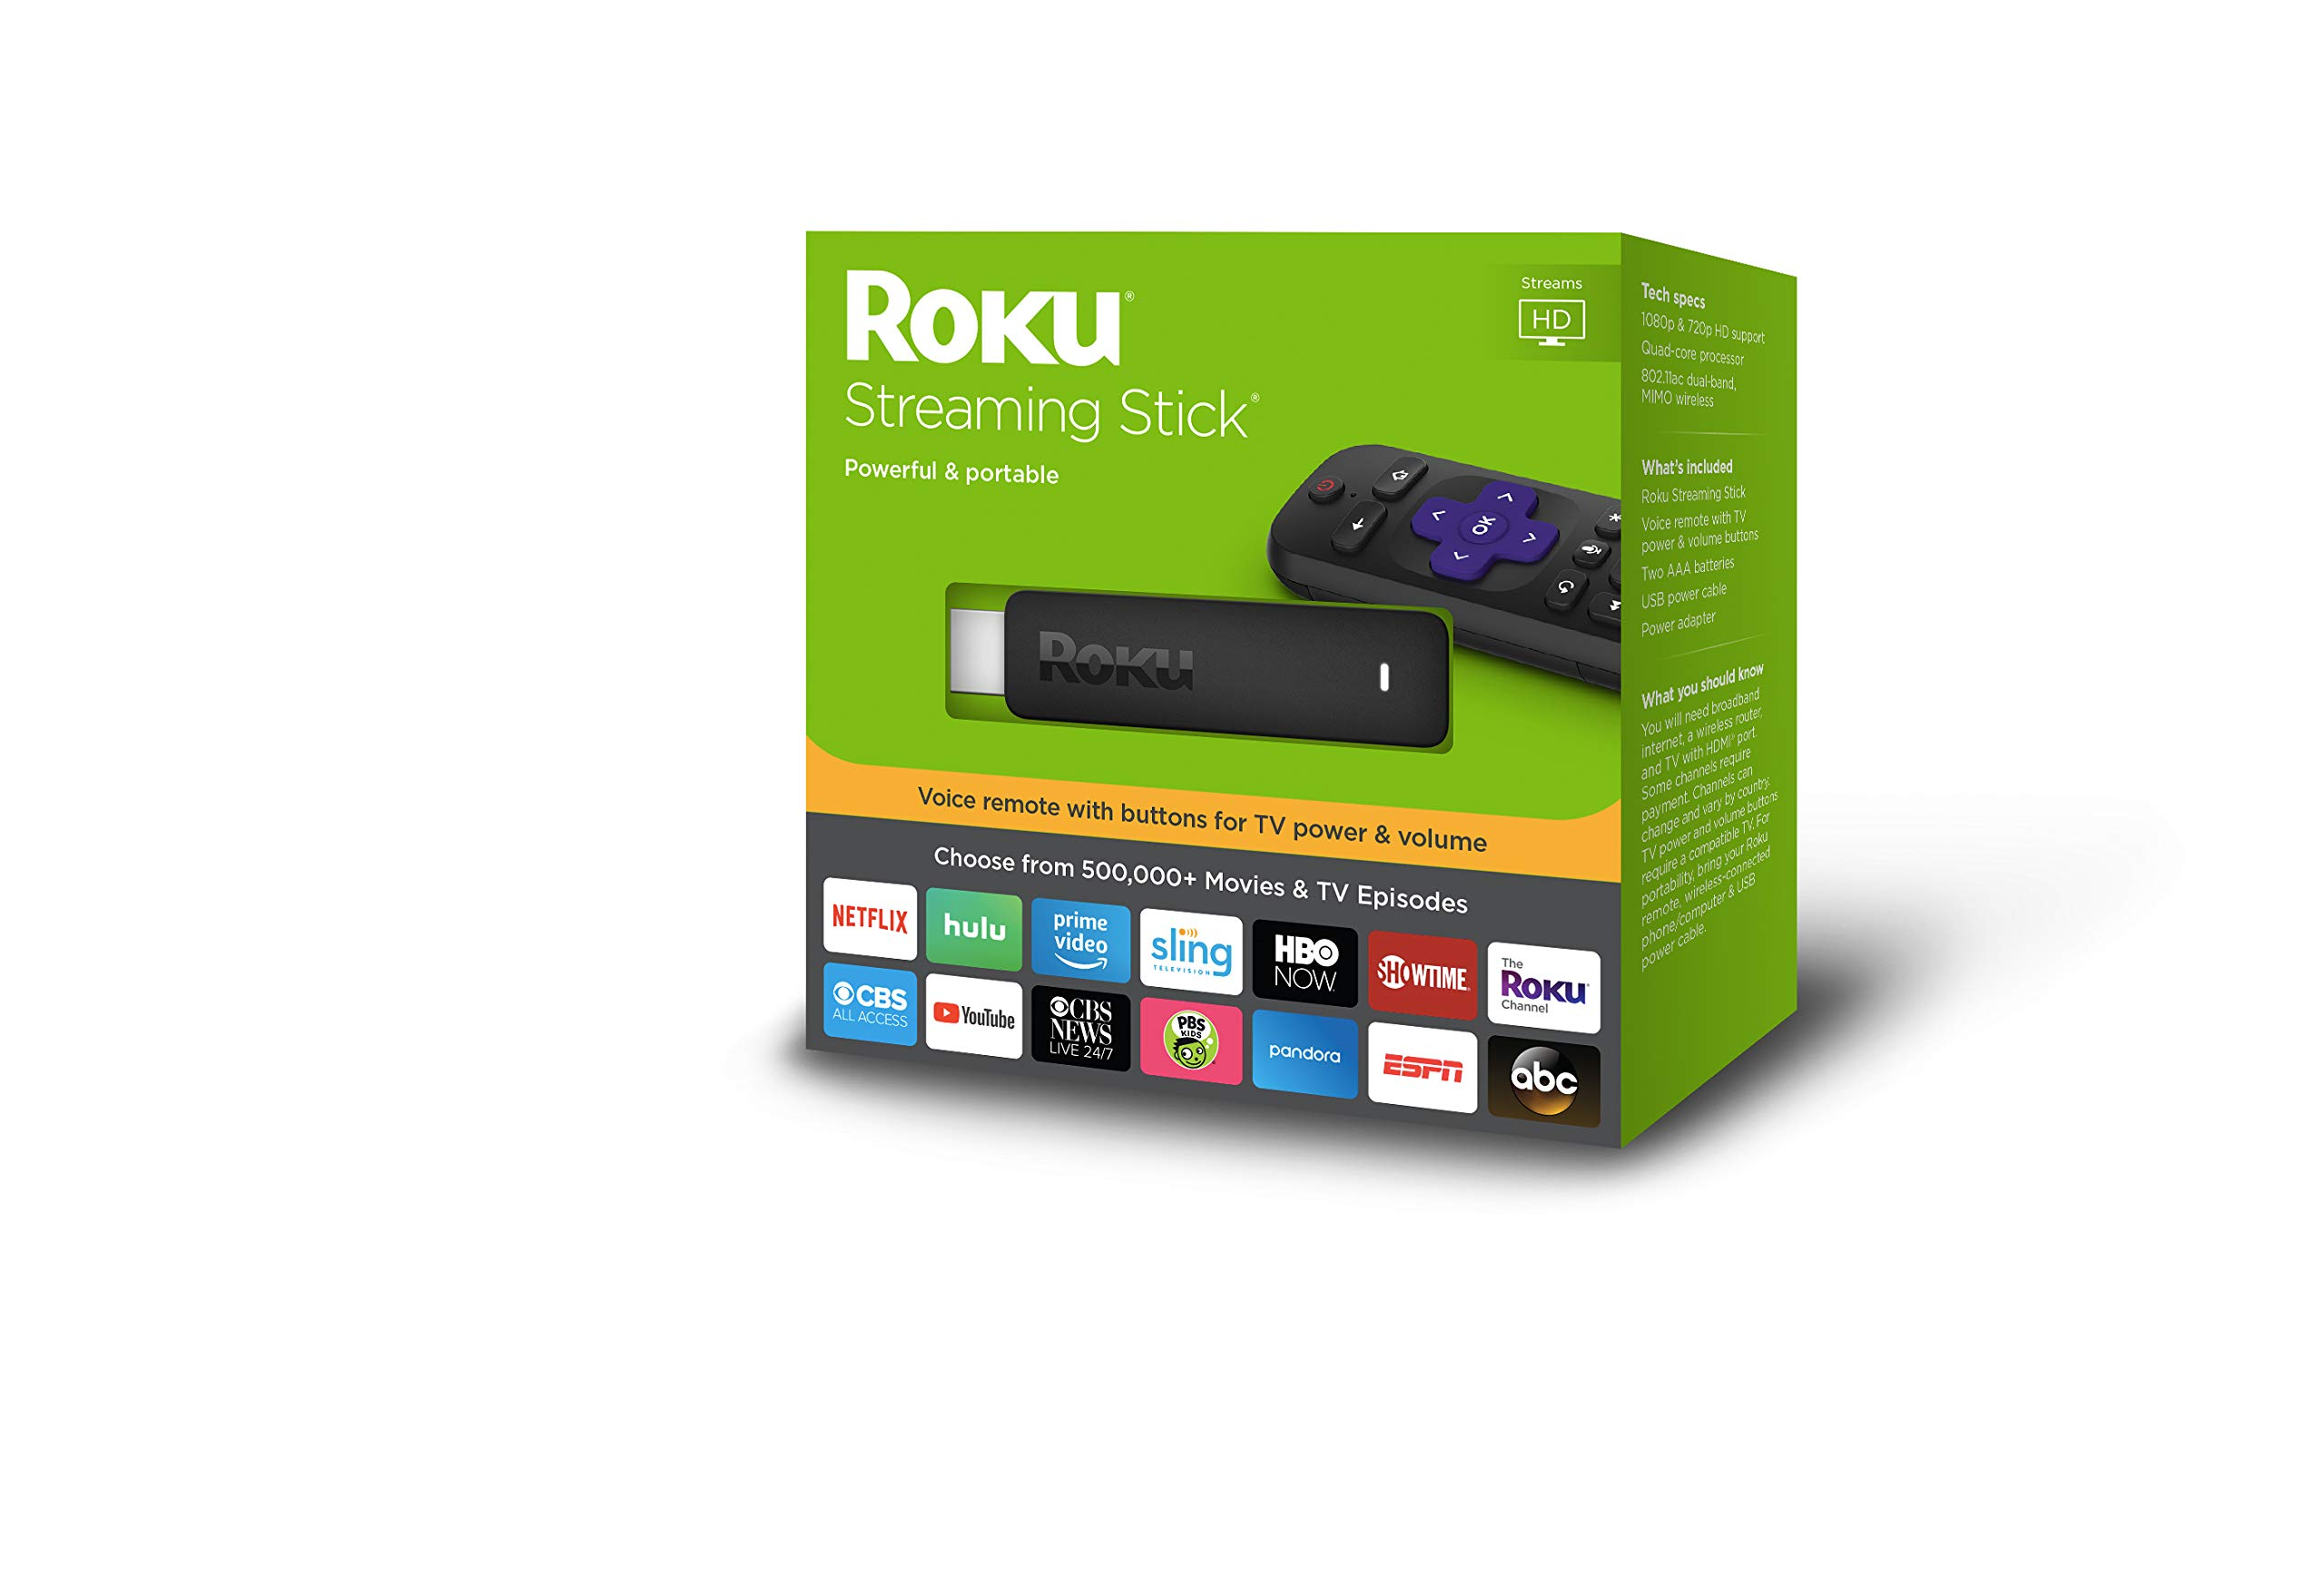 Roku Streaming Stick | Portable, Power-Packed Streaming Device with Voice  Remote with Buttons for TV Power and Volume - TechAdict